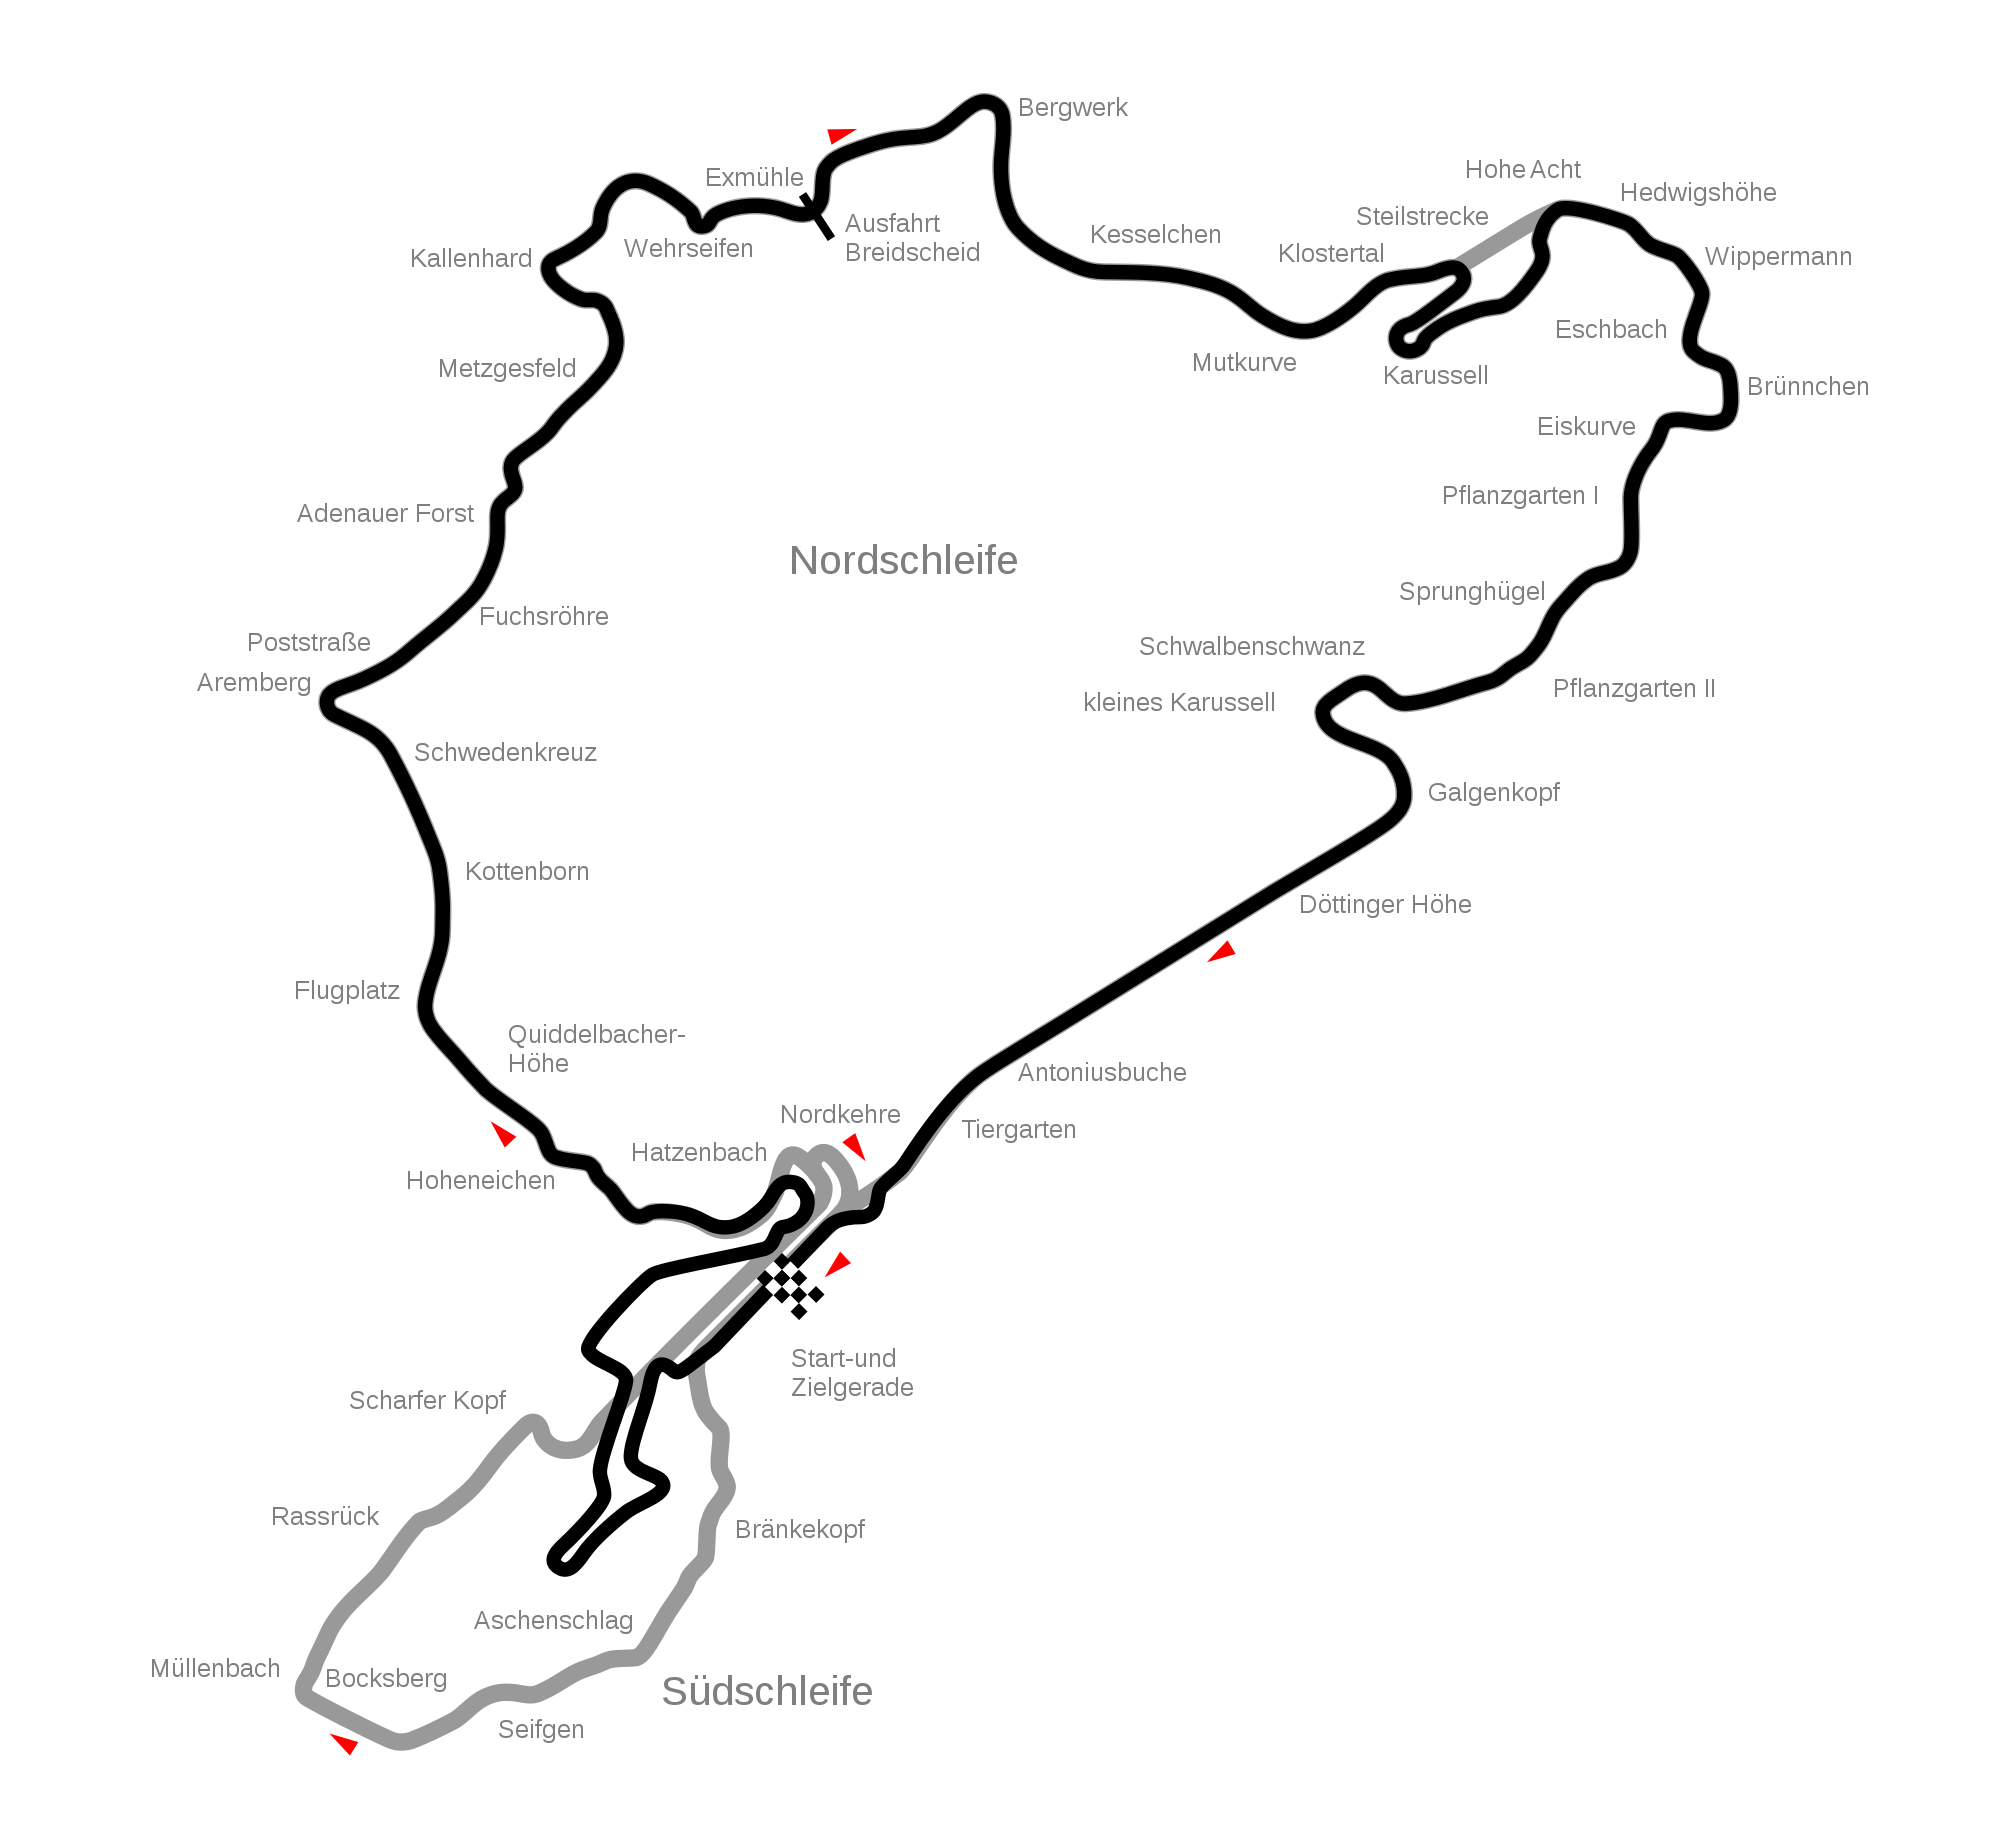 Nurburgring Showing New Gp Track Layout At Southern End Of